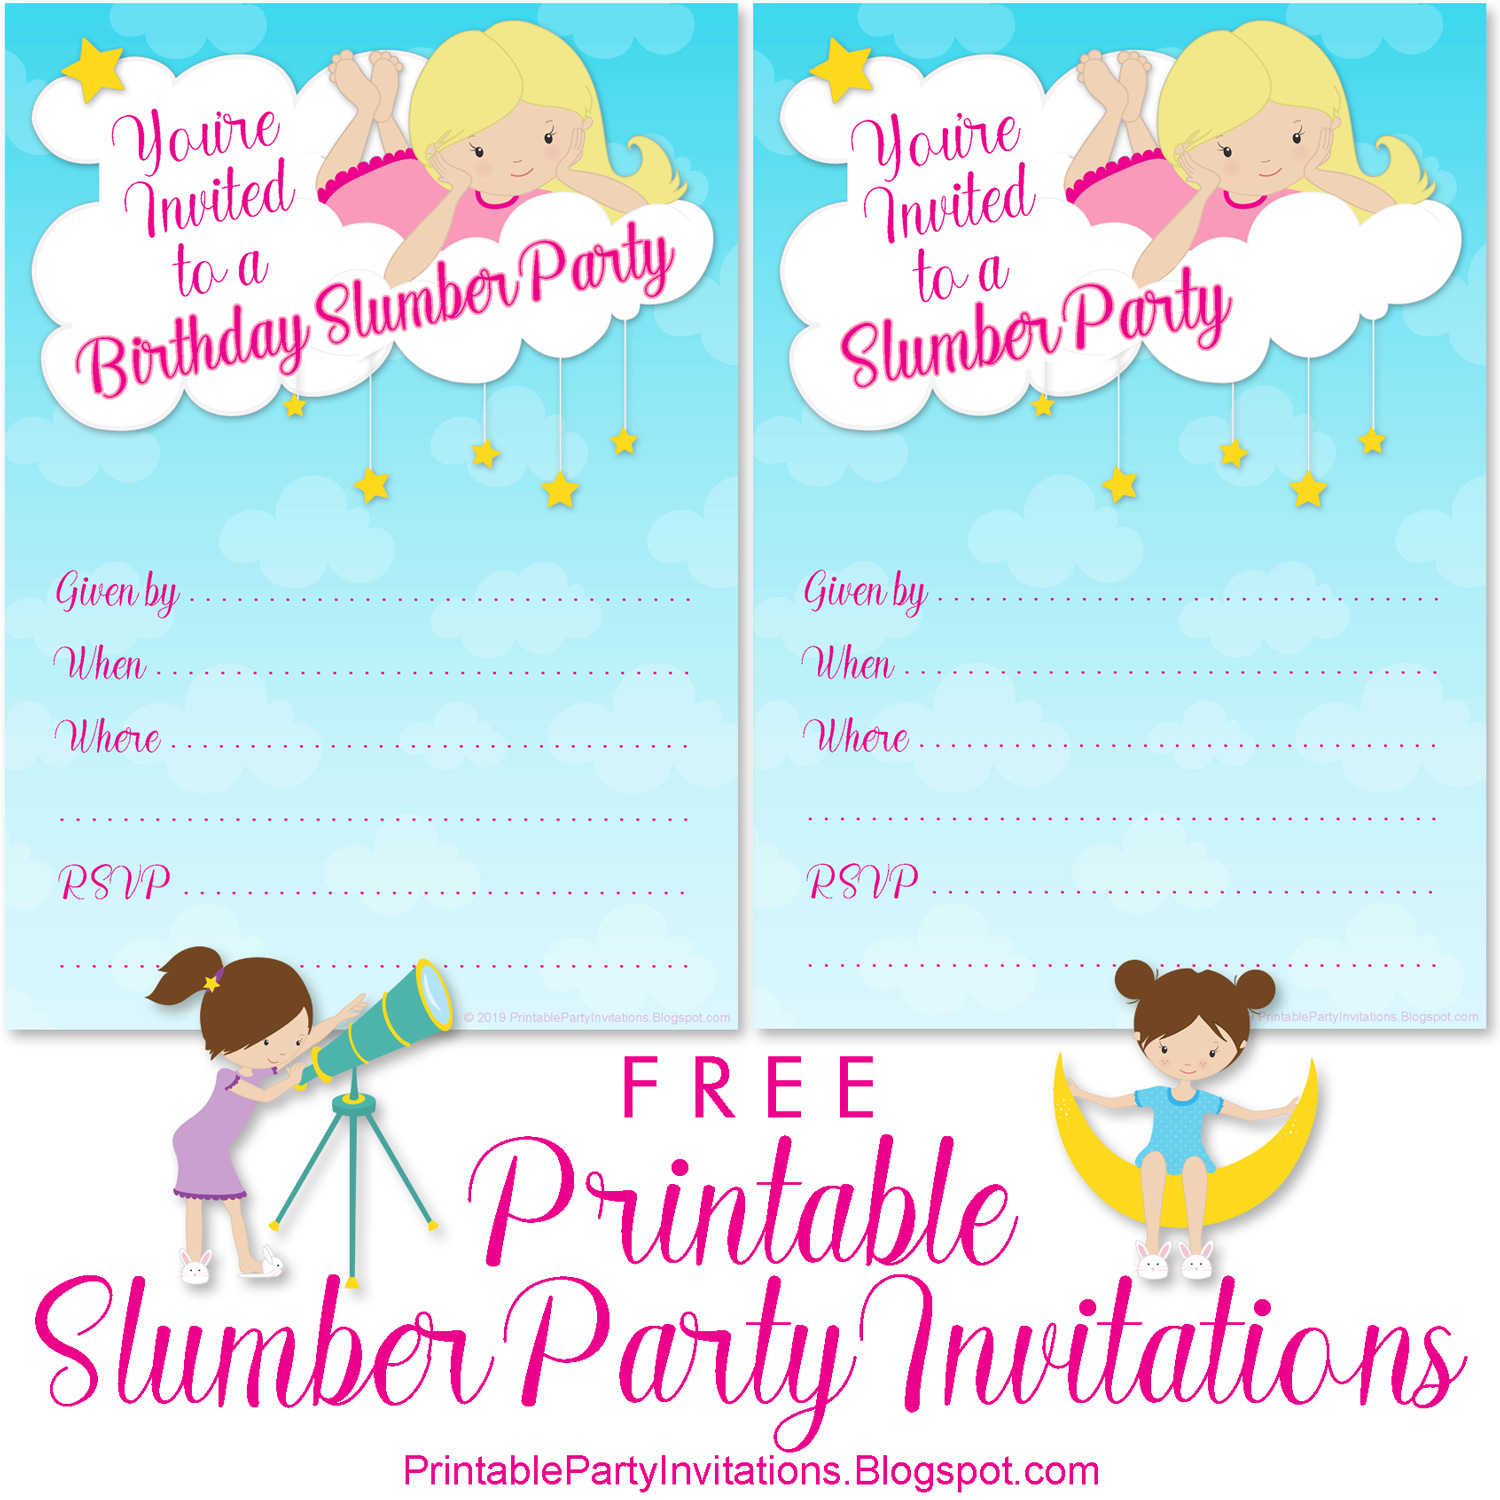 Slumber Party Invitations | Free Printable Party Invitations